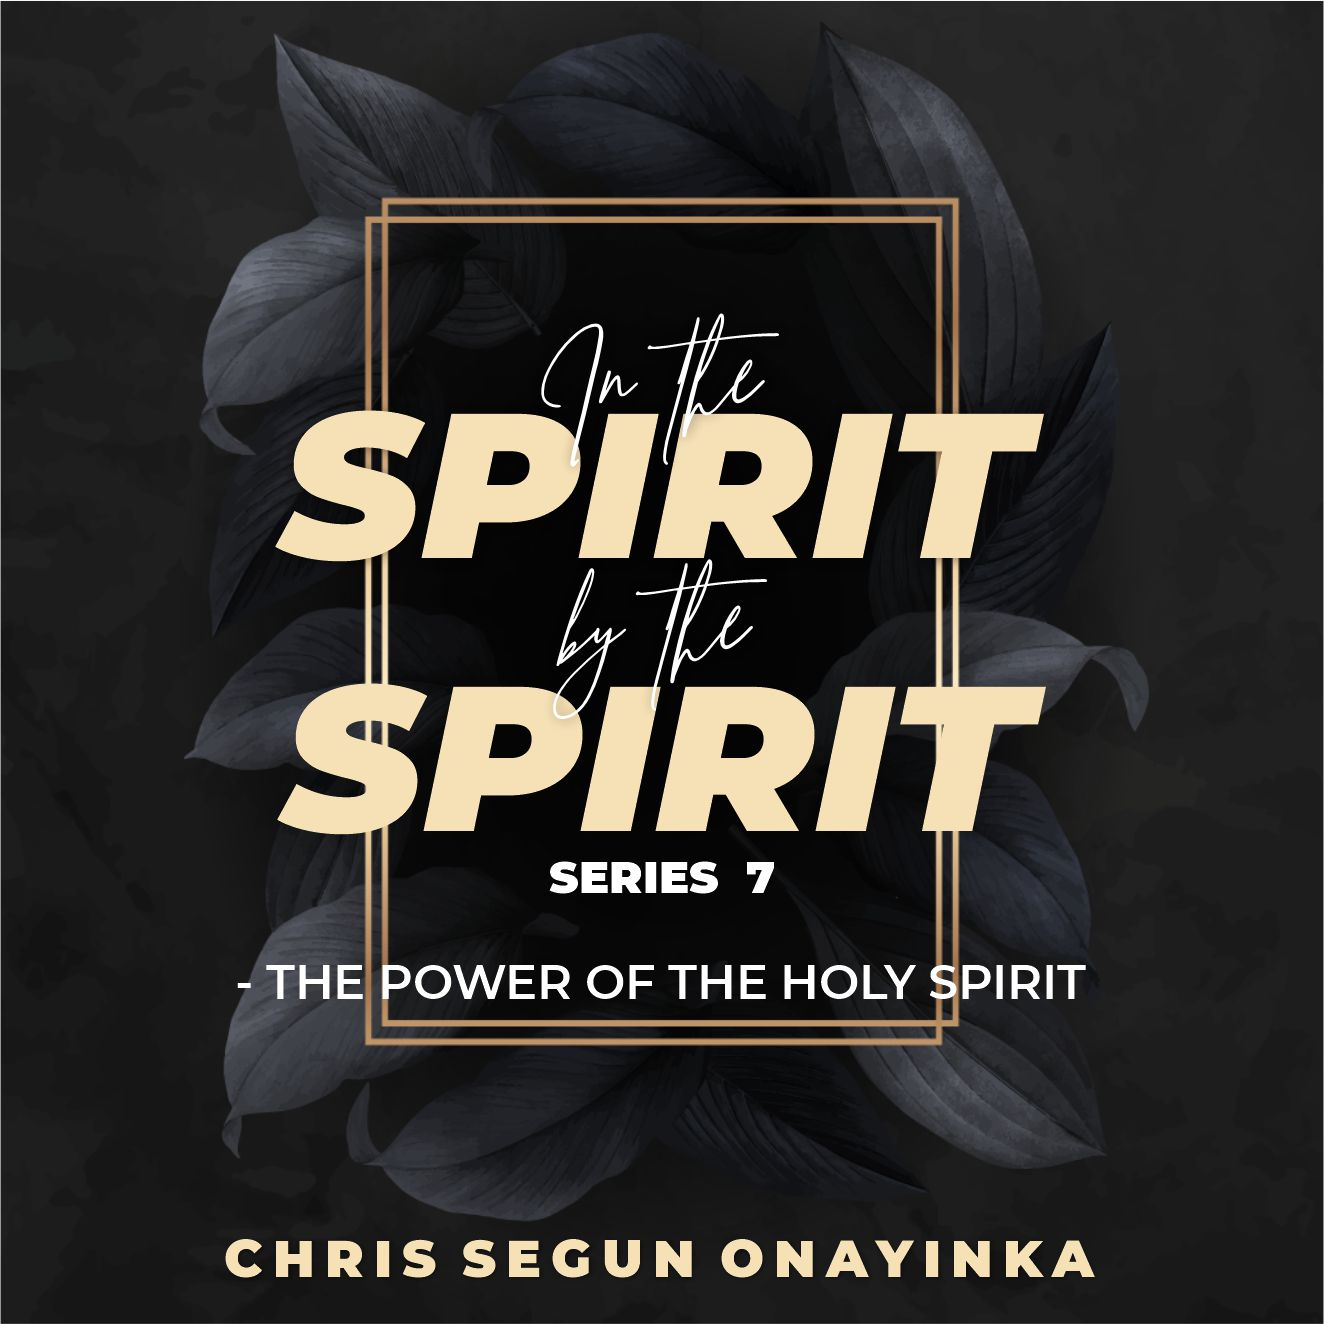 In the Spirit By the Spirit Series 7 – The Power of the Holy Spirit